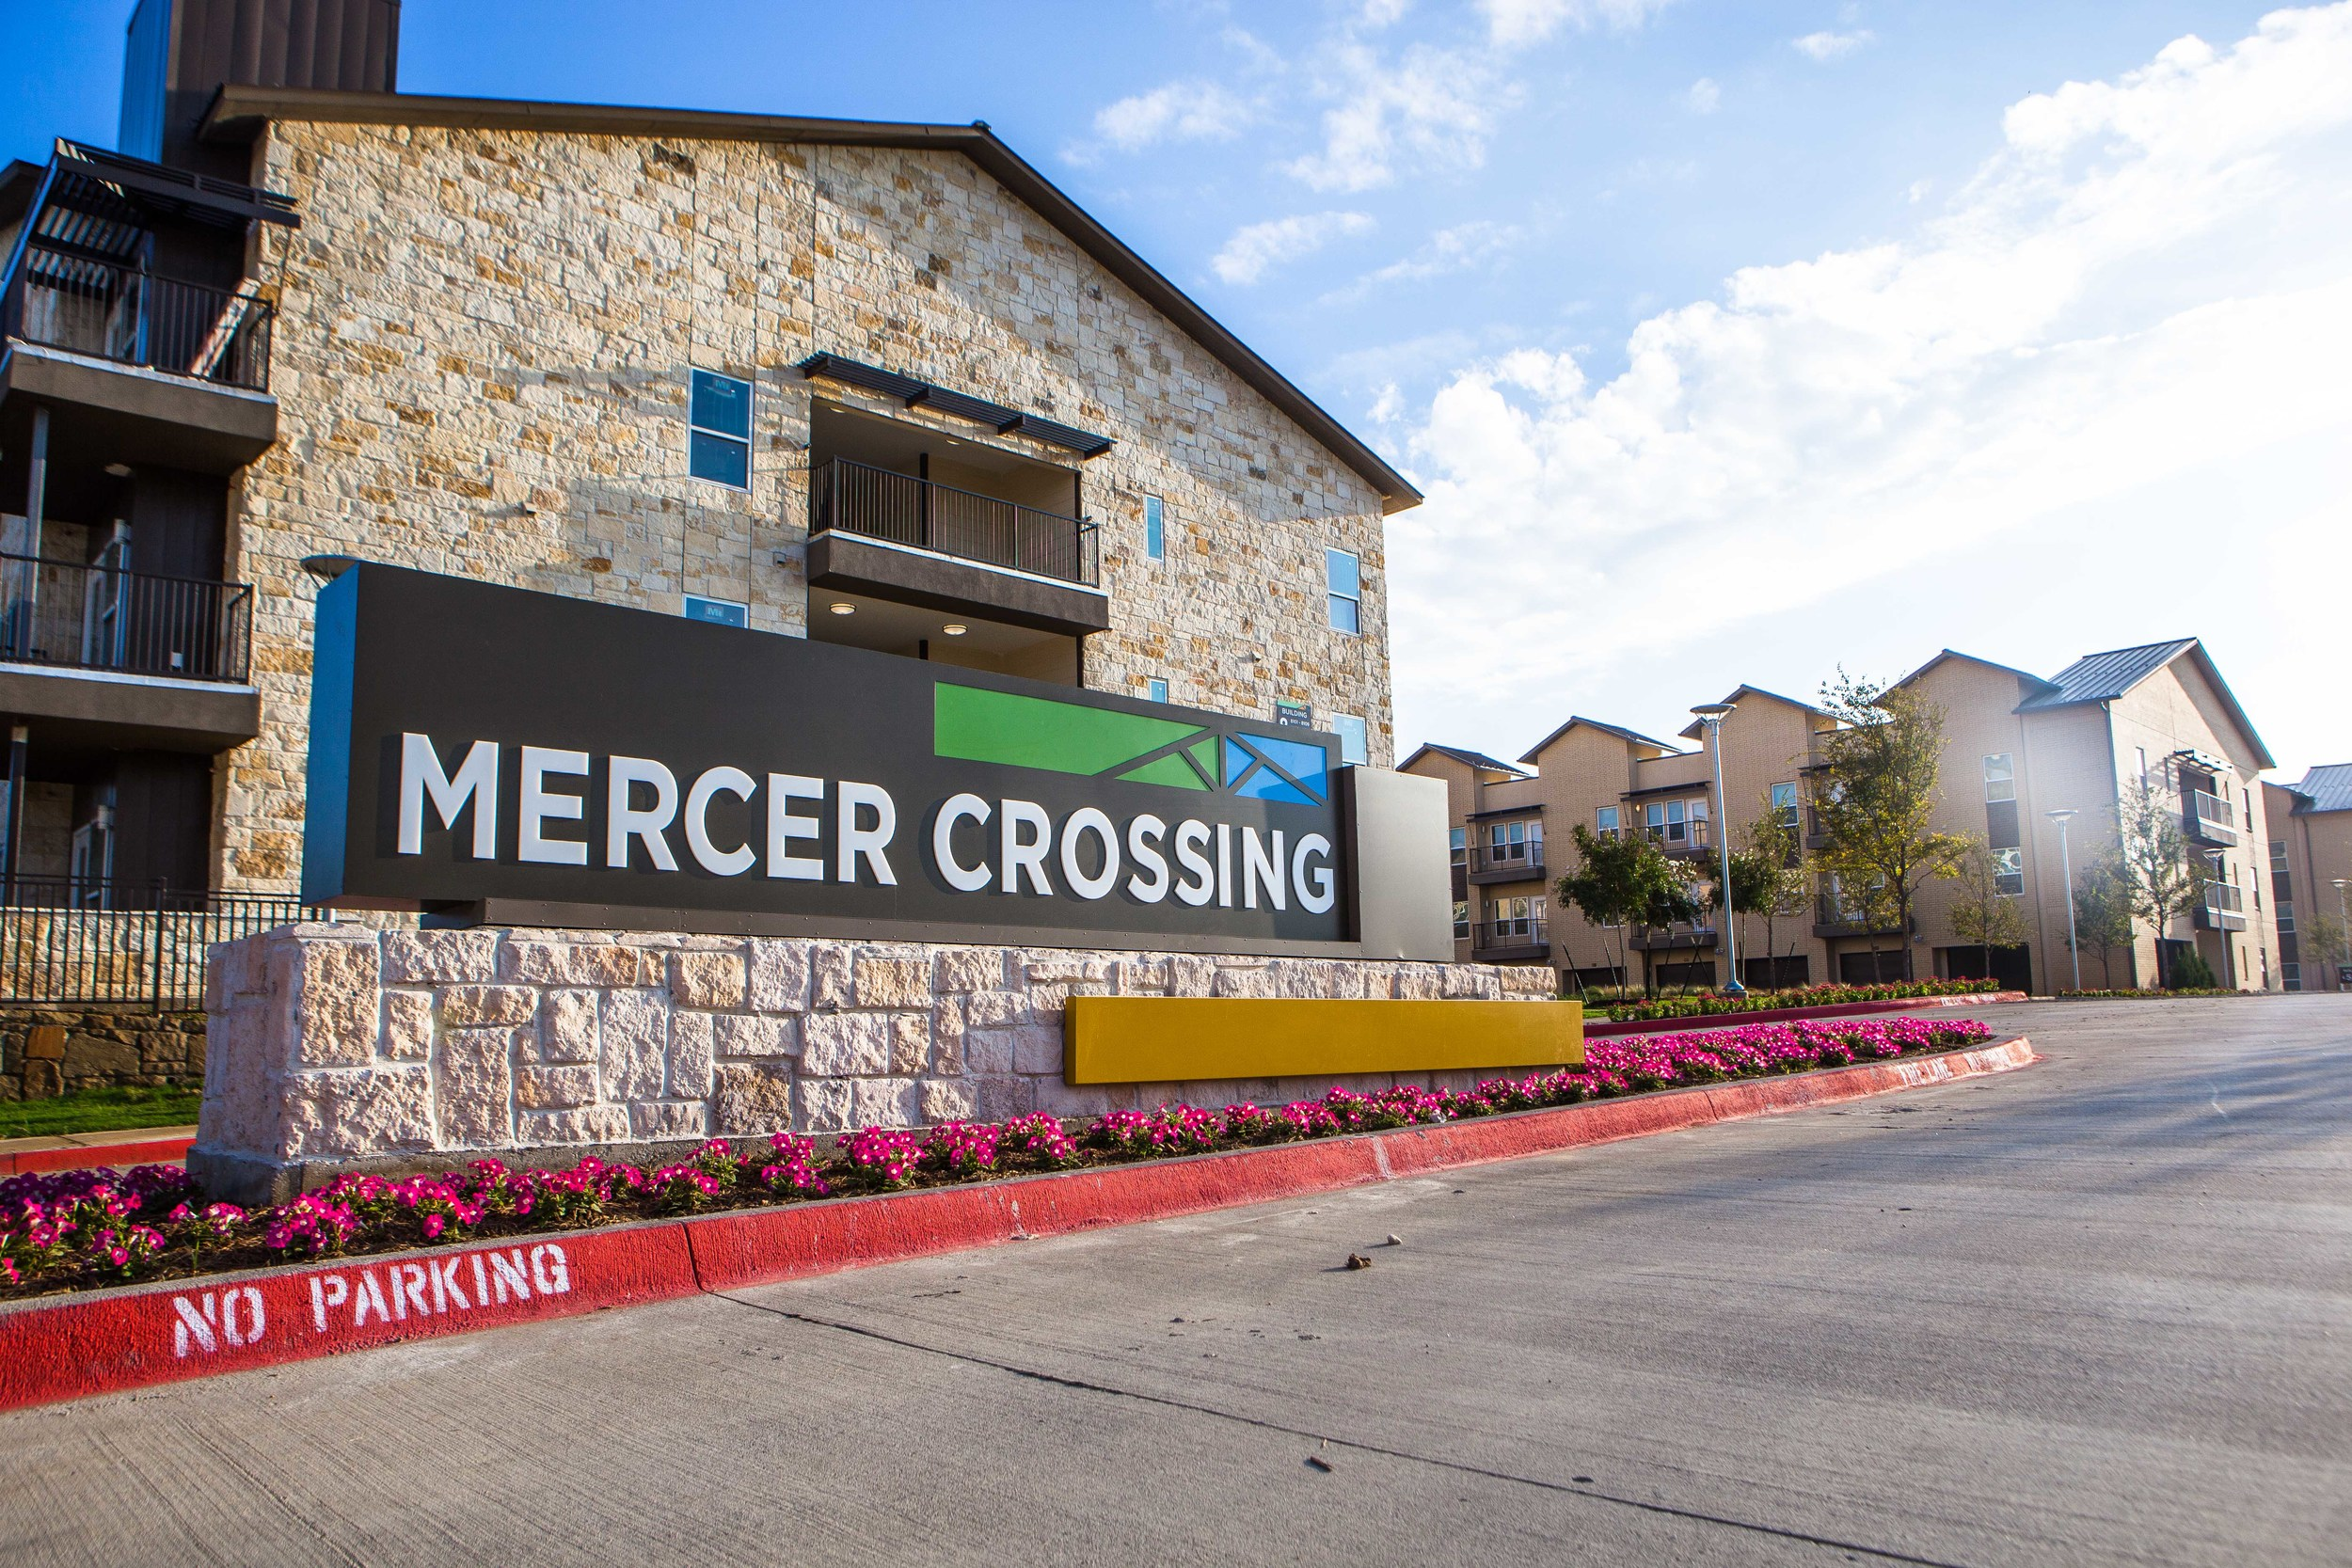 2014 09 20 Mercer Crossing Print-8.jpg